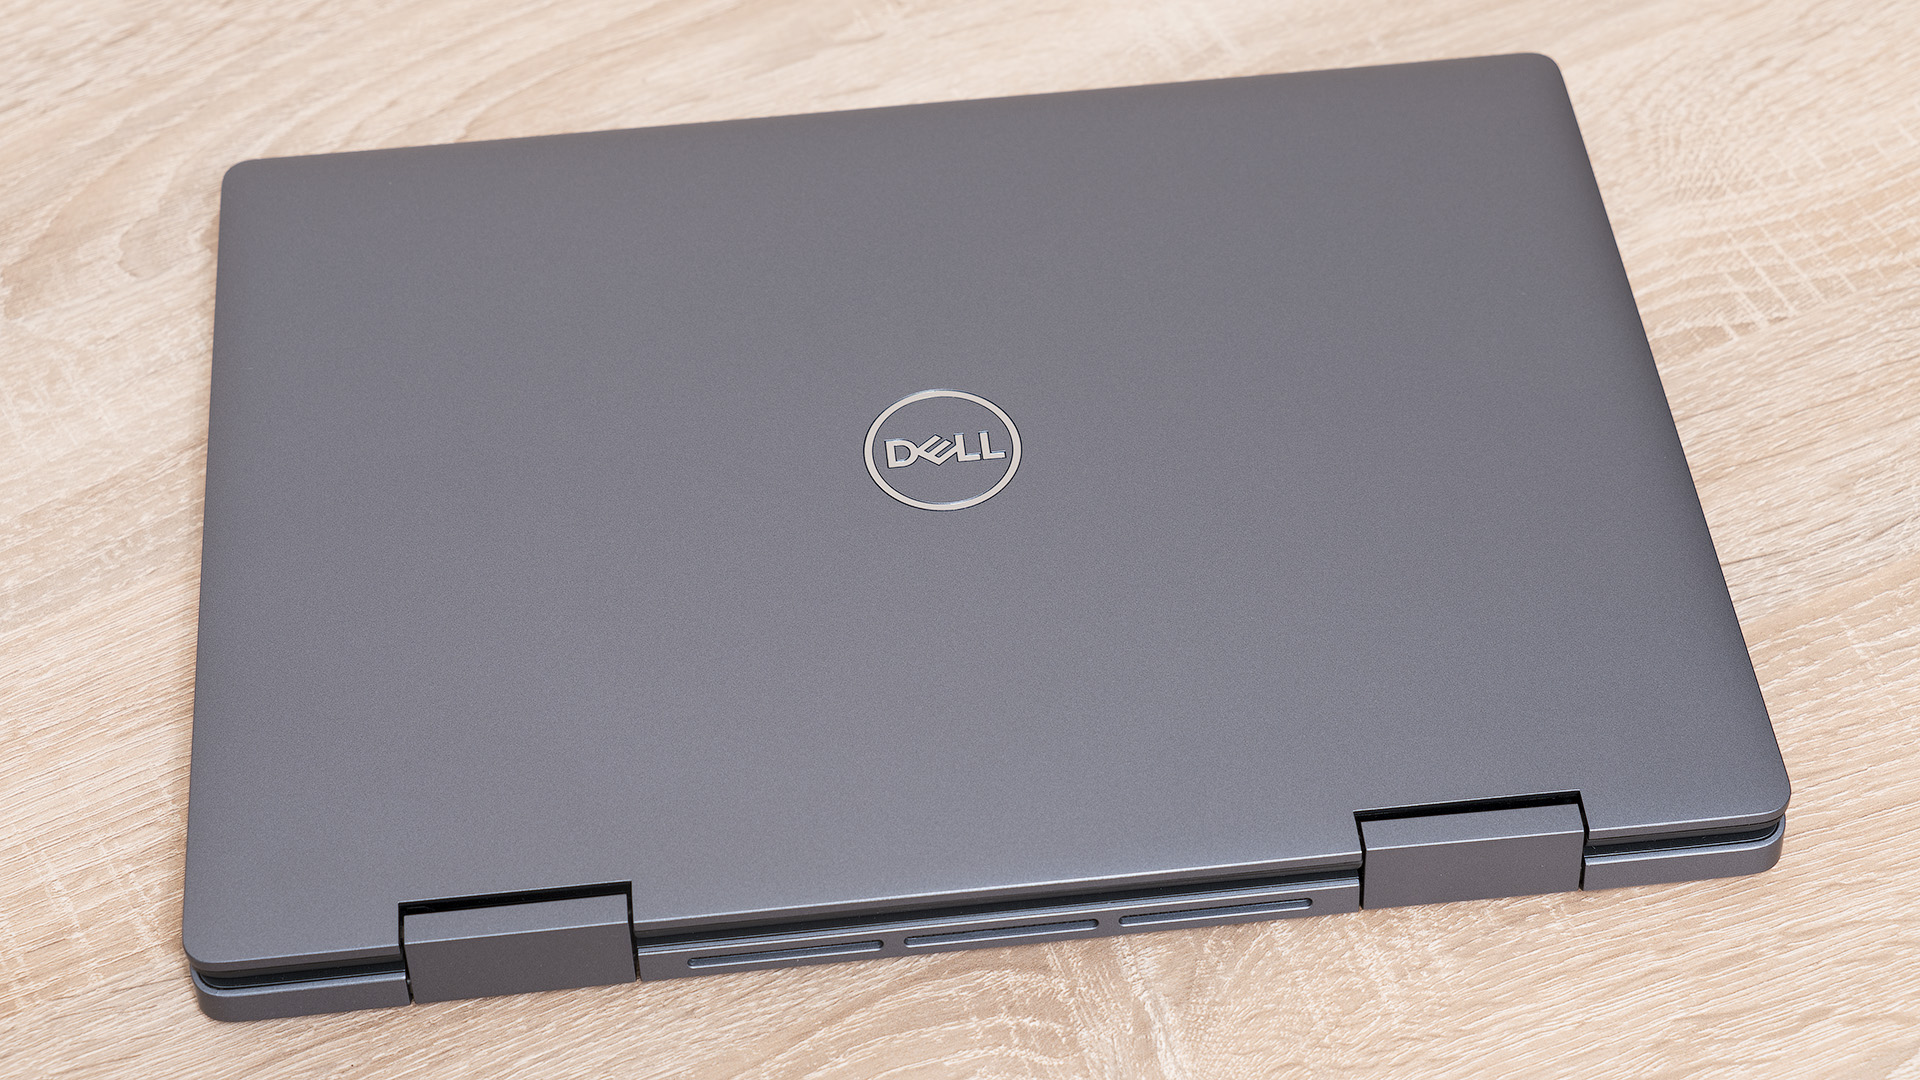 Dell Inspiron 14 5482 An Economical 2 In 1 With Good